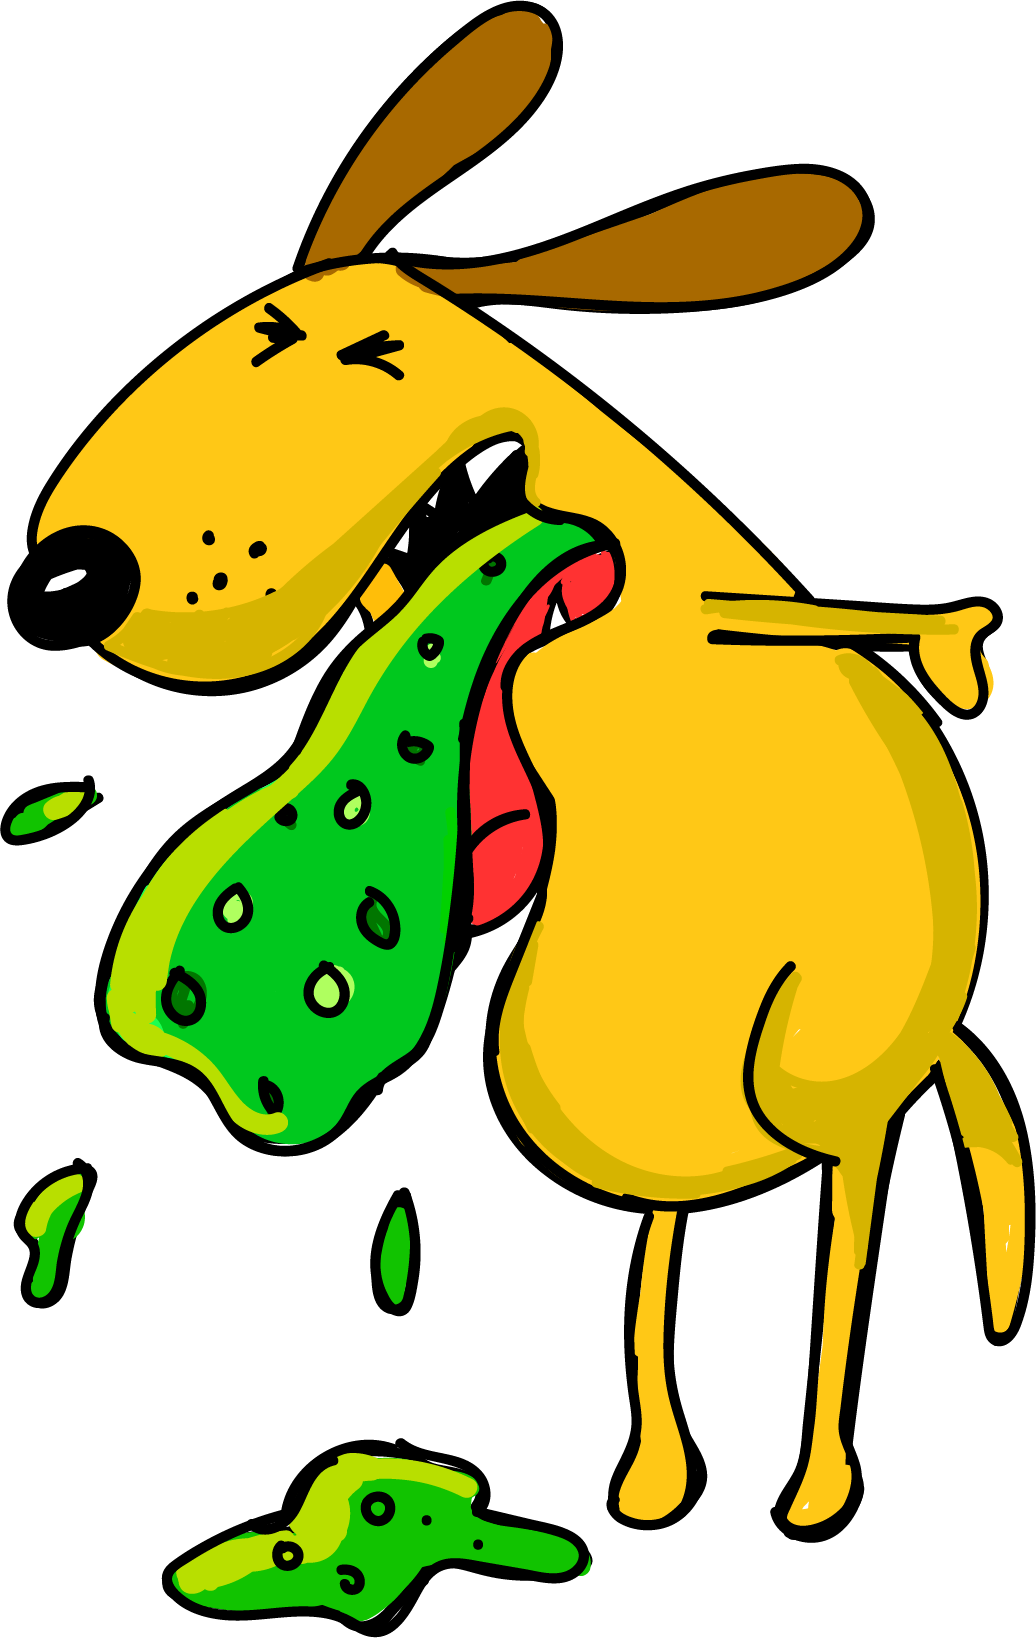 Dog Vomiting Clipart.